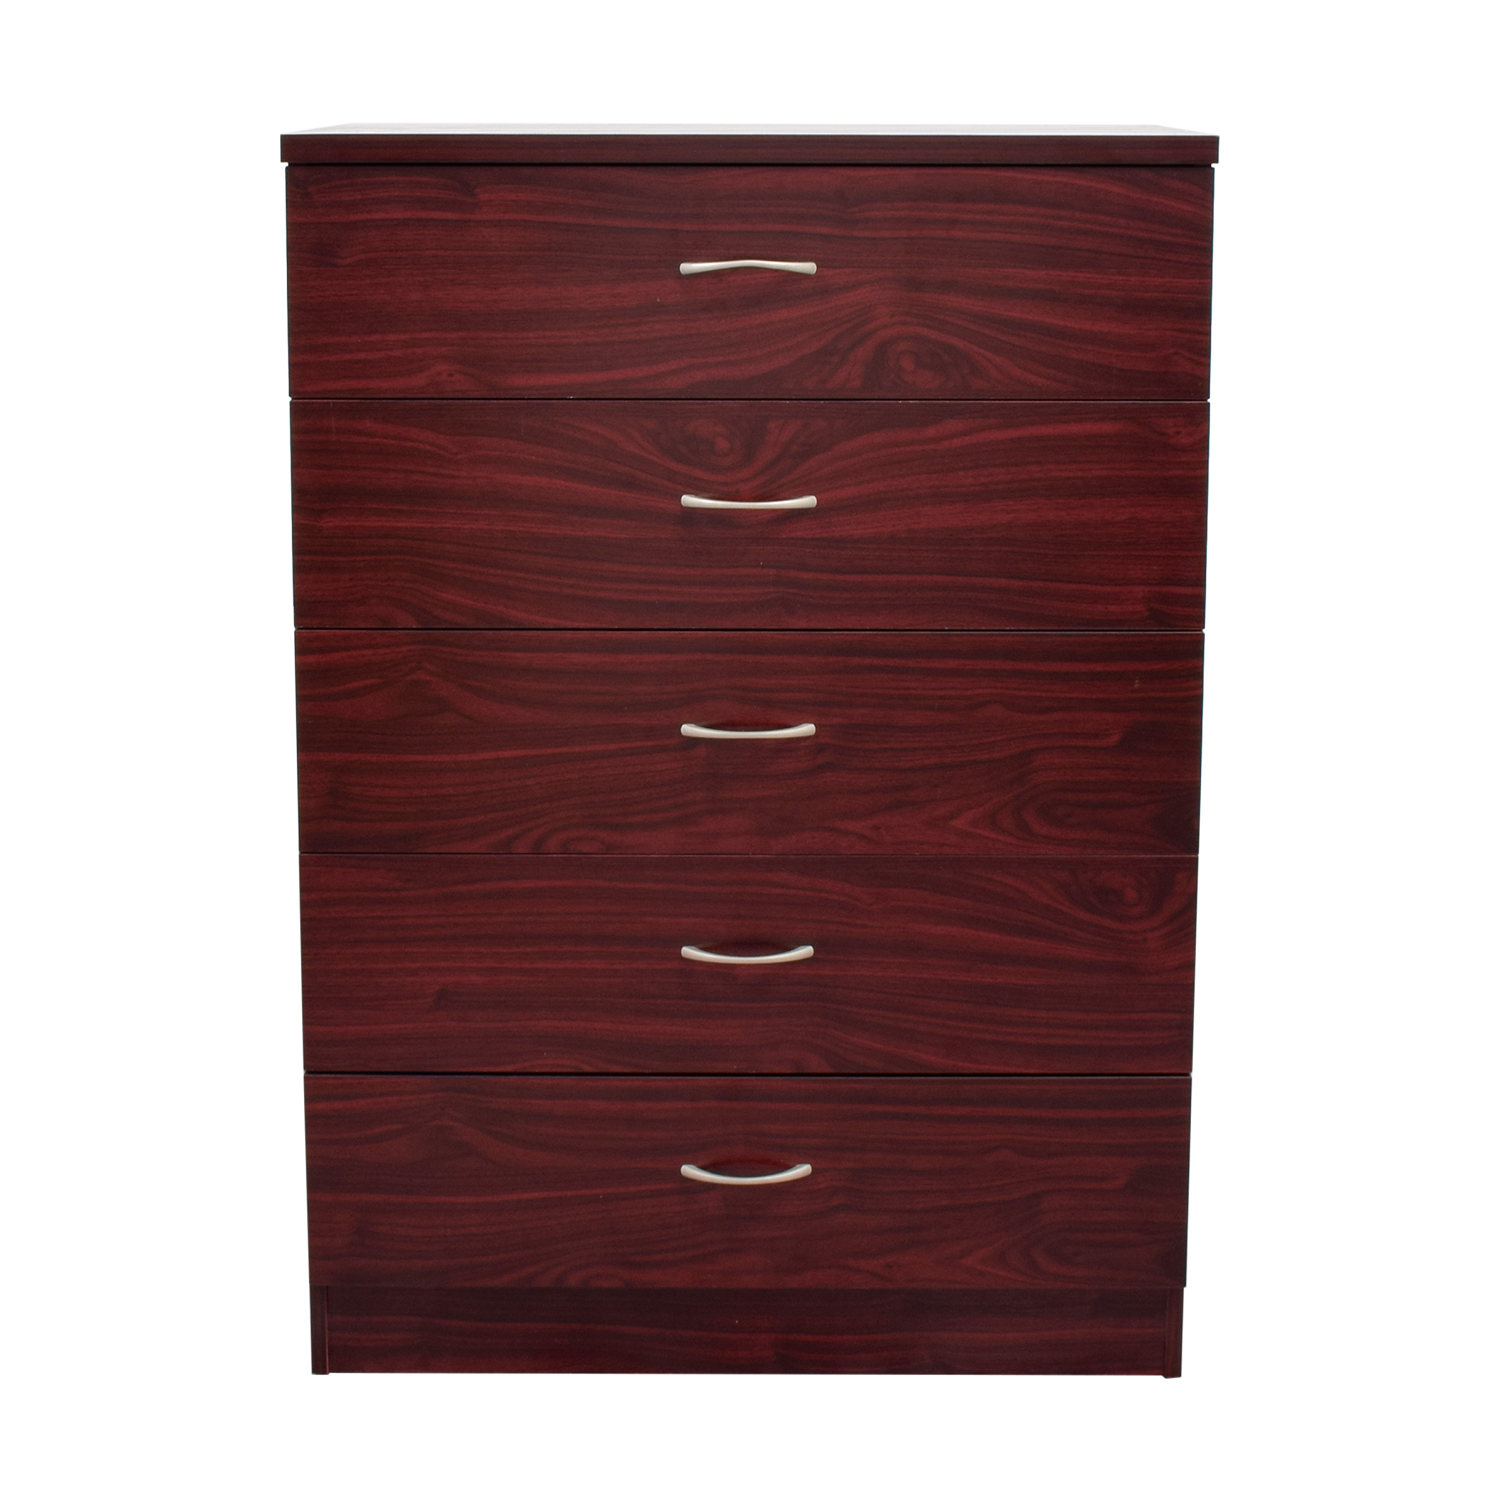 Five-Drawer Wood Chest of Drawers